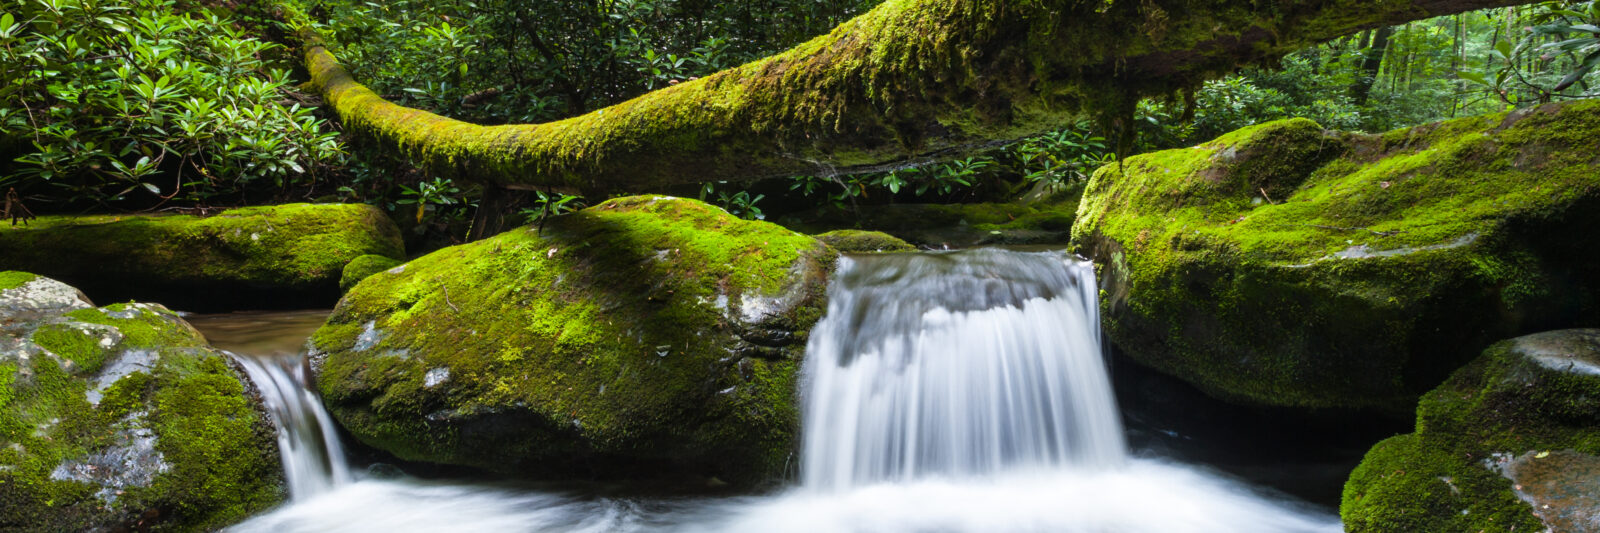 Photo of the Roaring Fork Stream located in the Great Smoky Mountain National Park. One of the great free things to do in Gatlinburg.